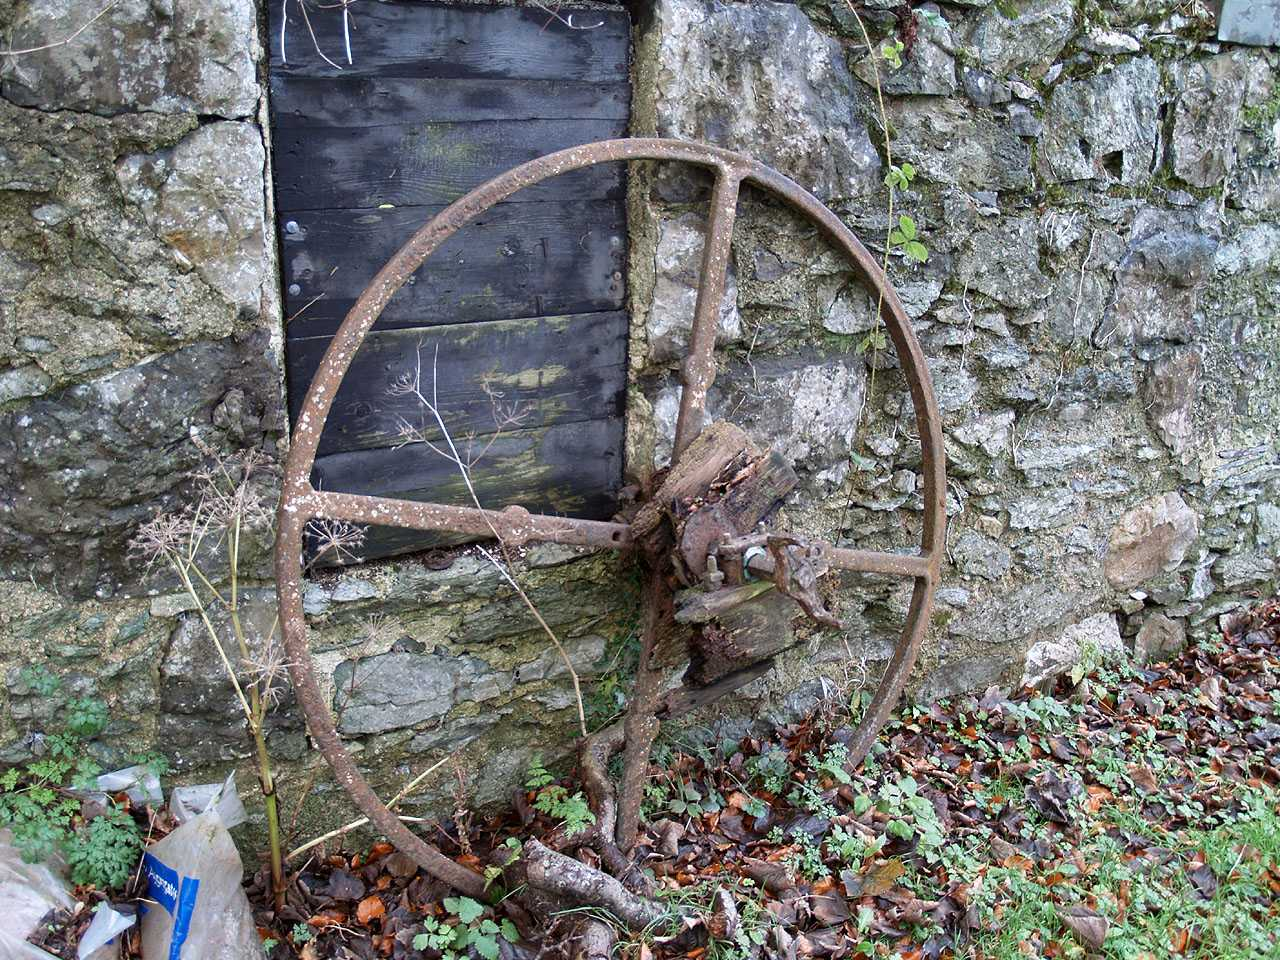 Anglesey, Llangefni Water Mill - Metal Wheel